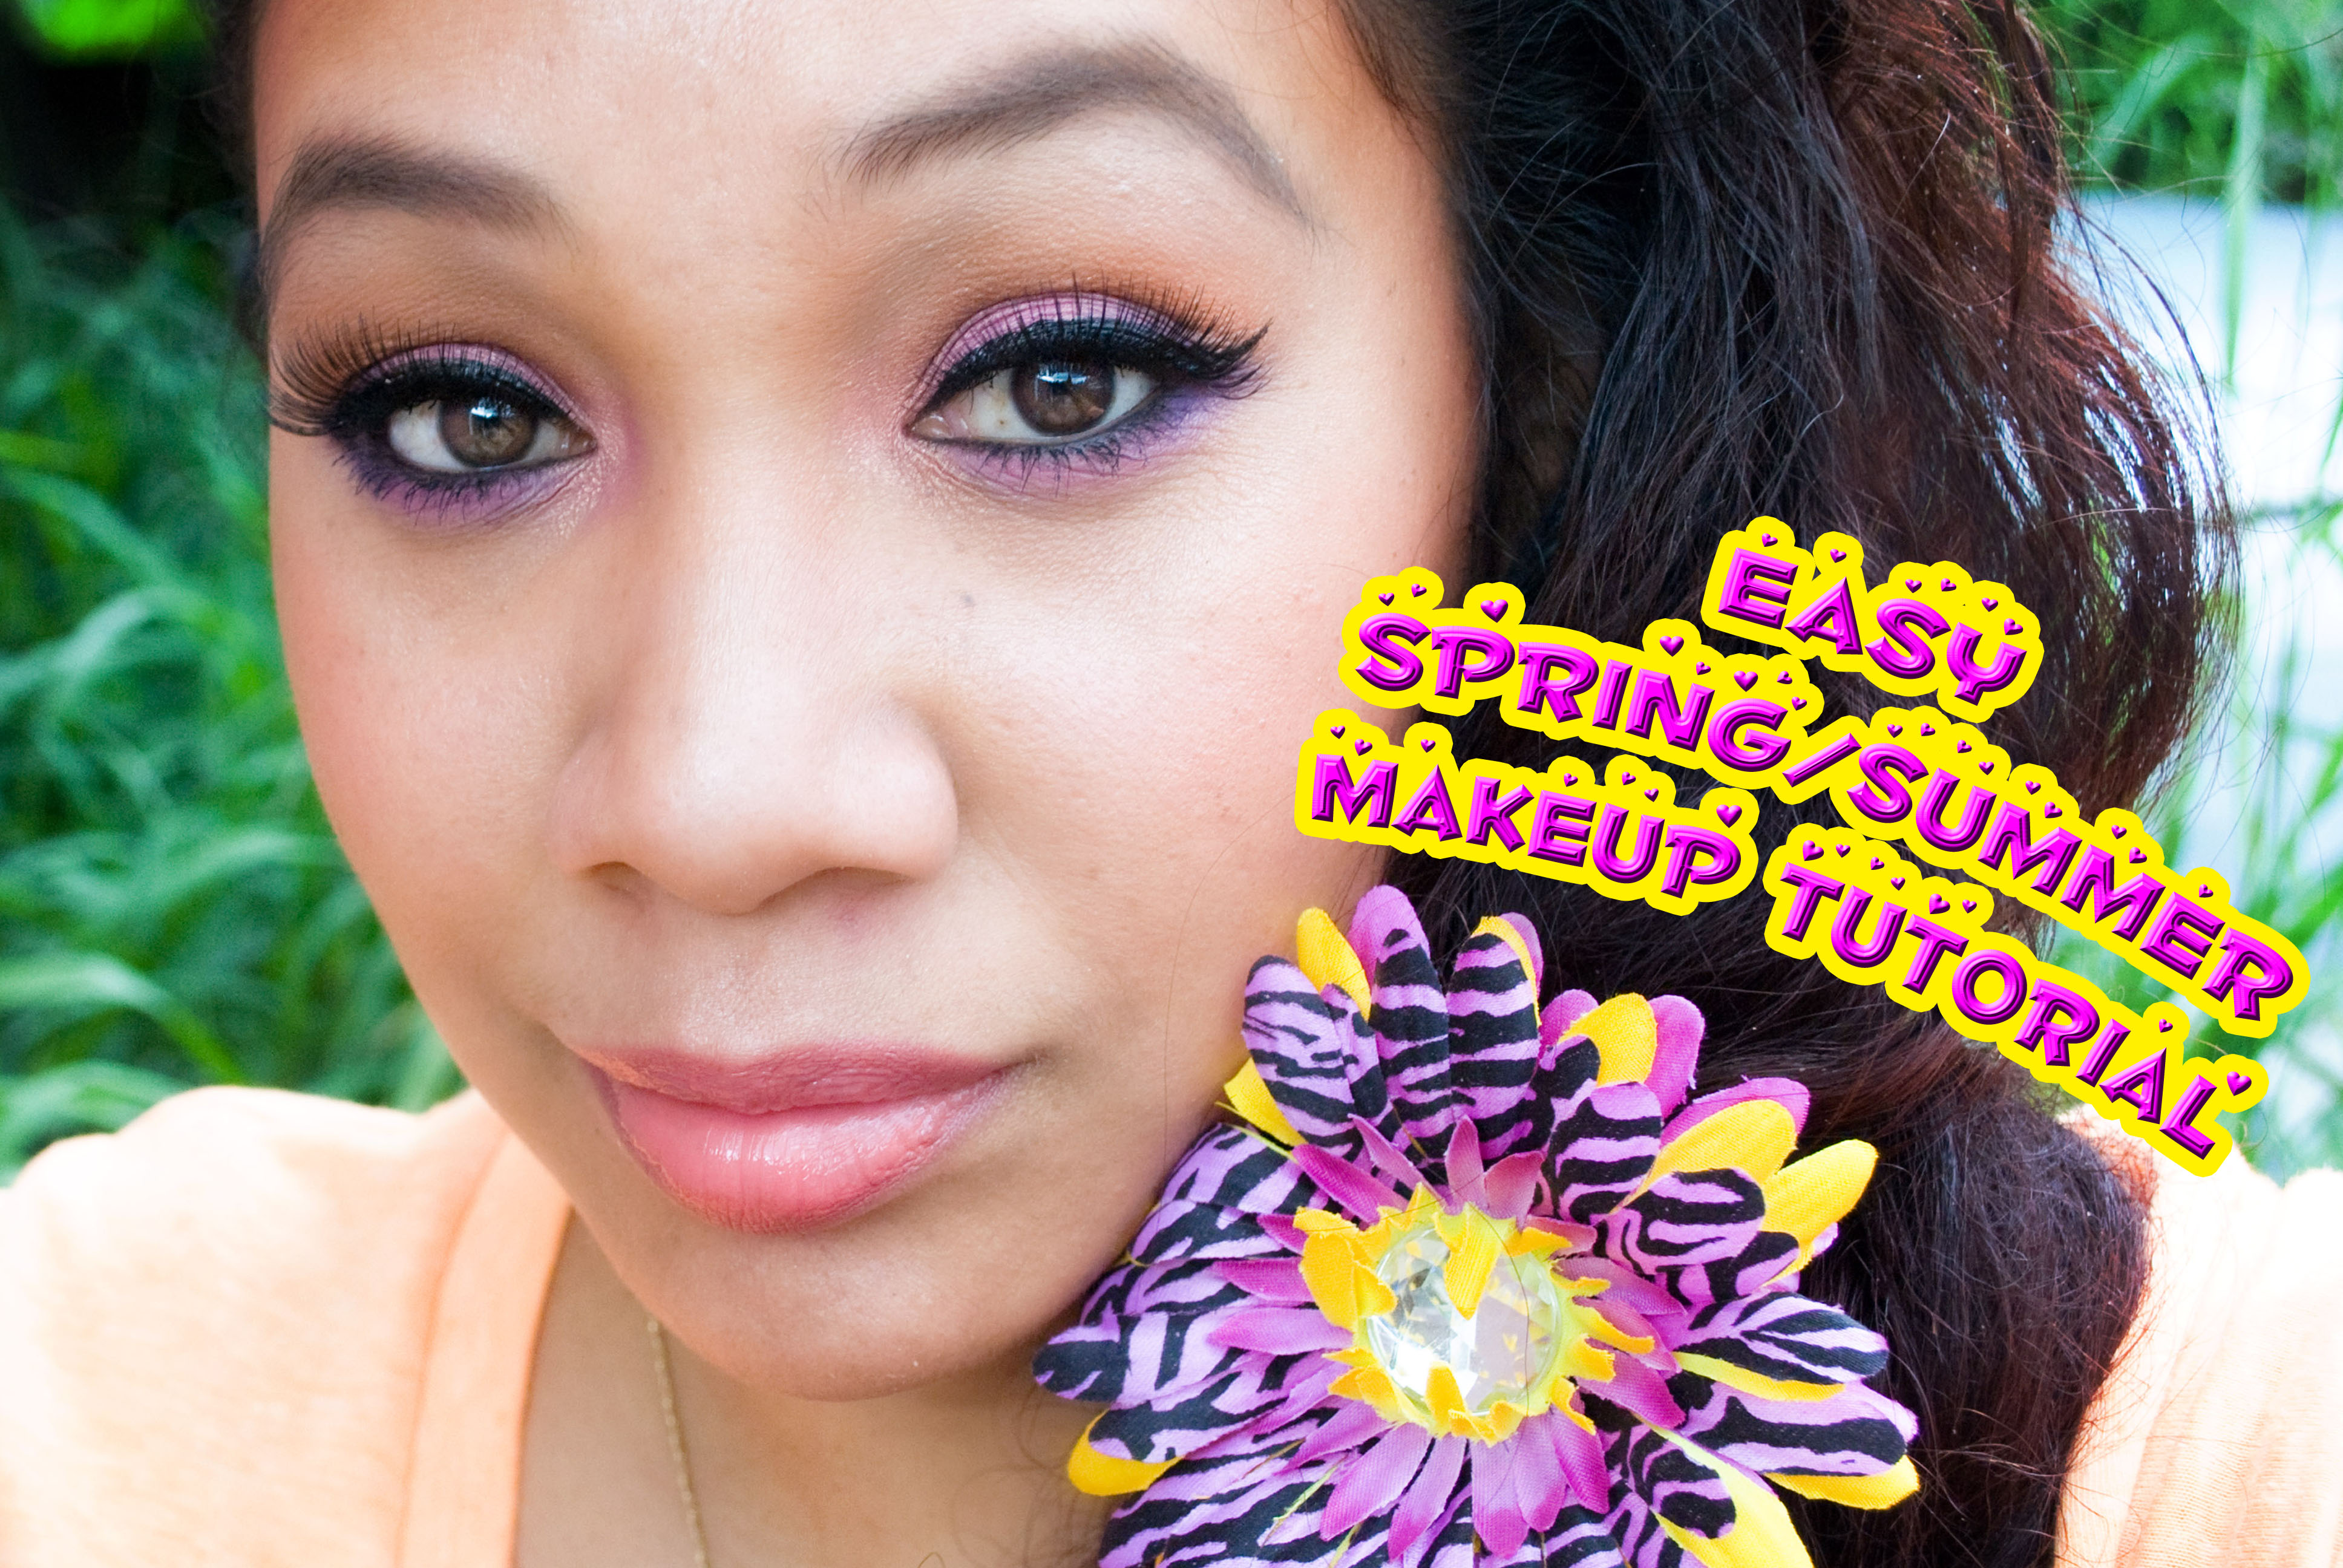 Spring/Summer Makeup Tutorial